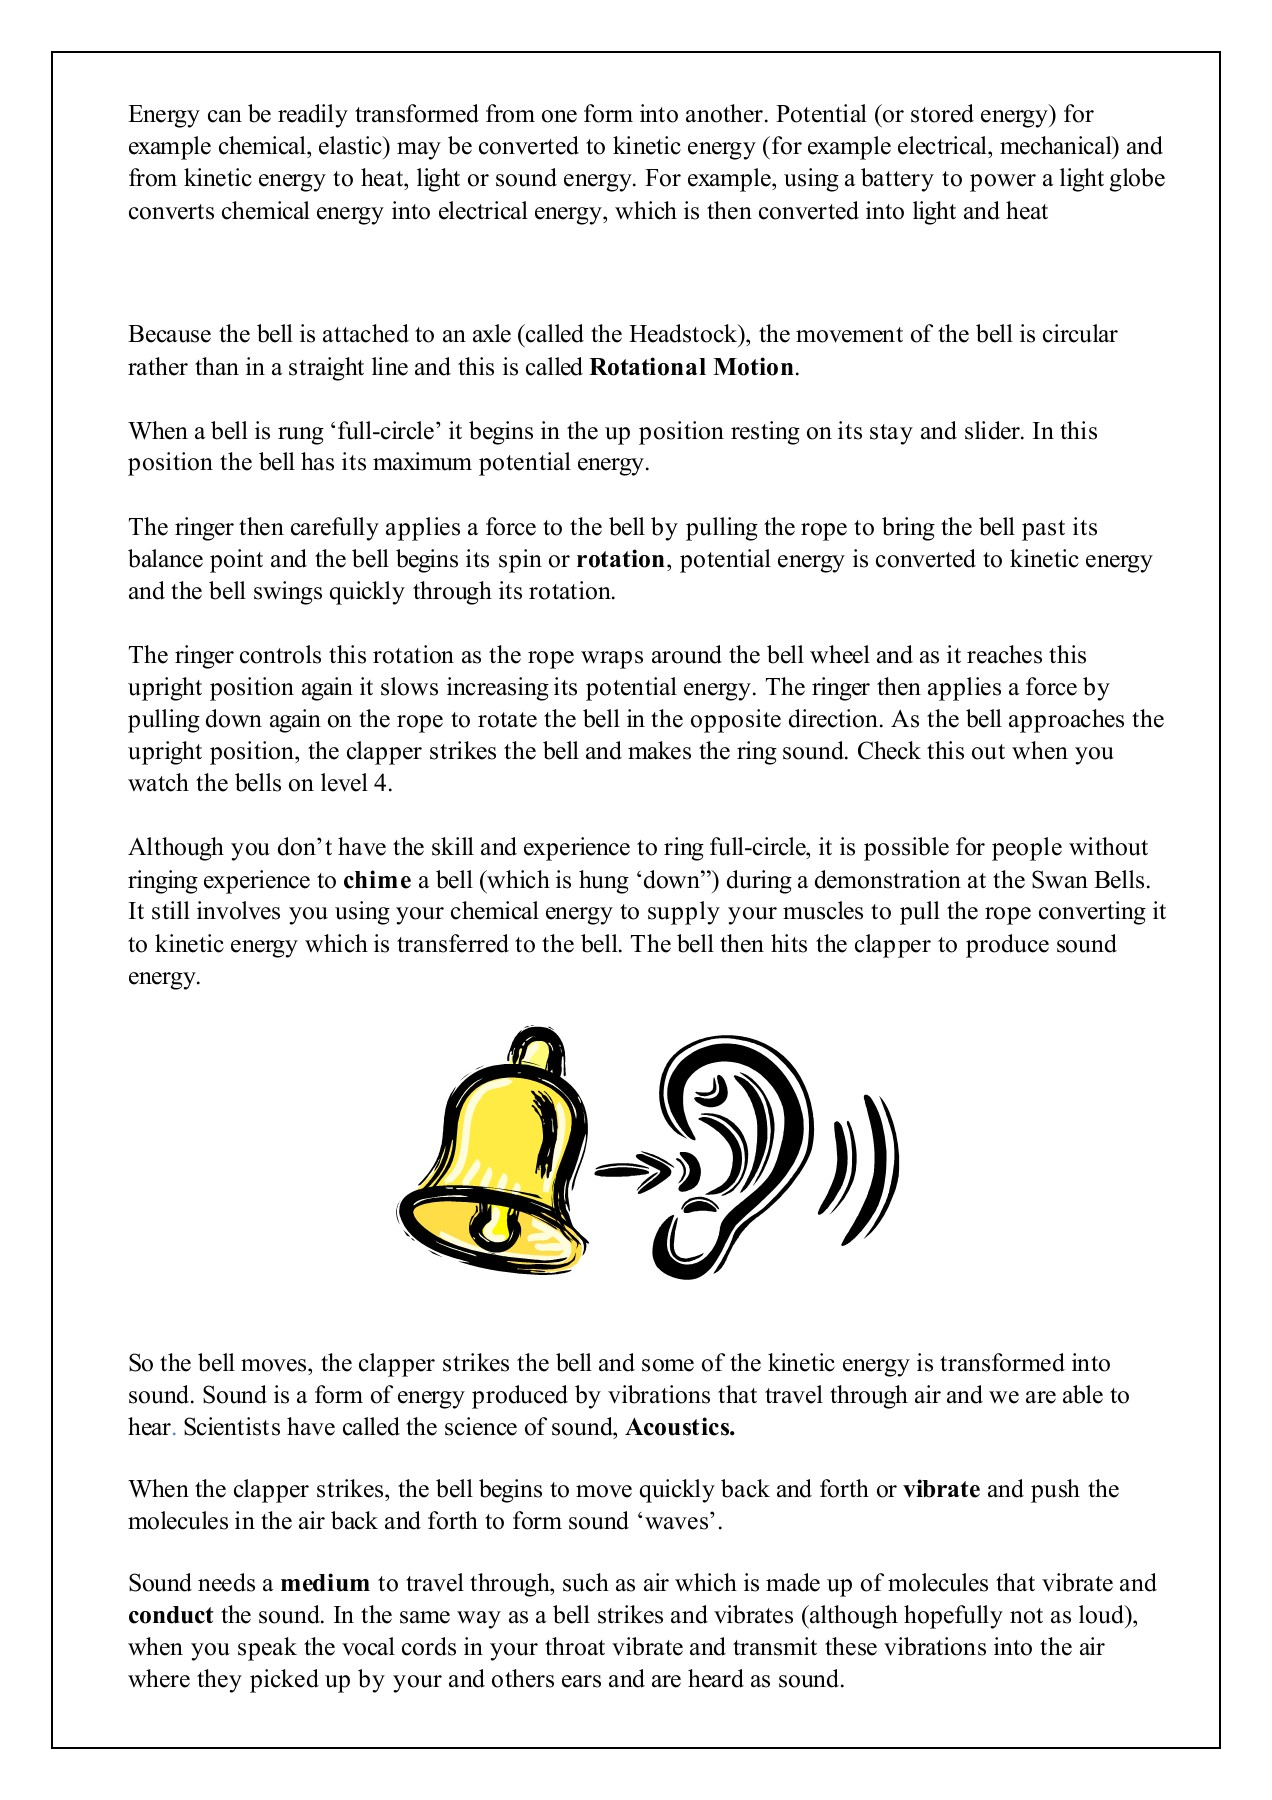 Science of bells - The Bell Tower Pages 1 - 4 - Text Version